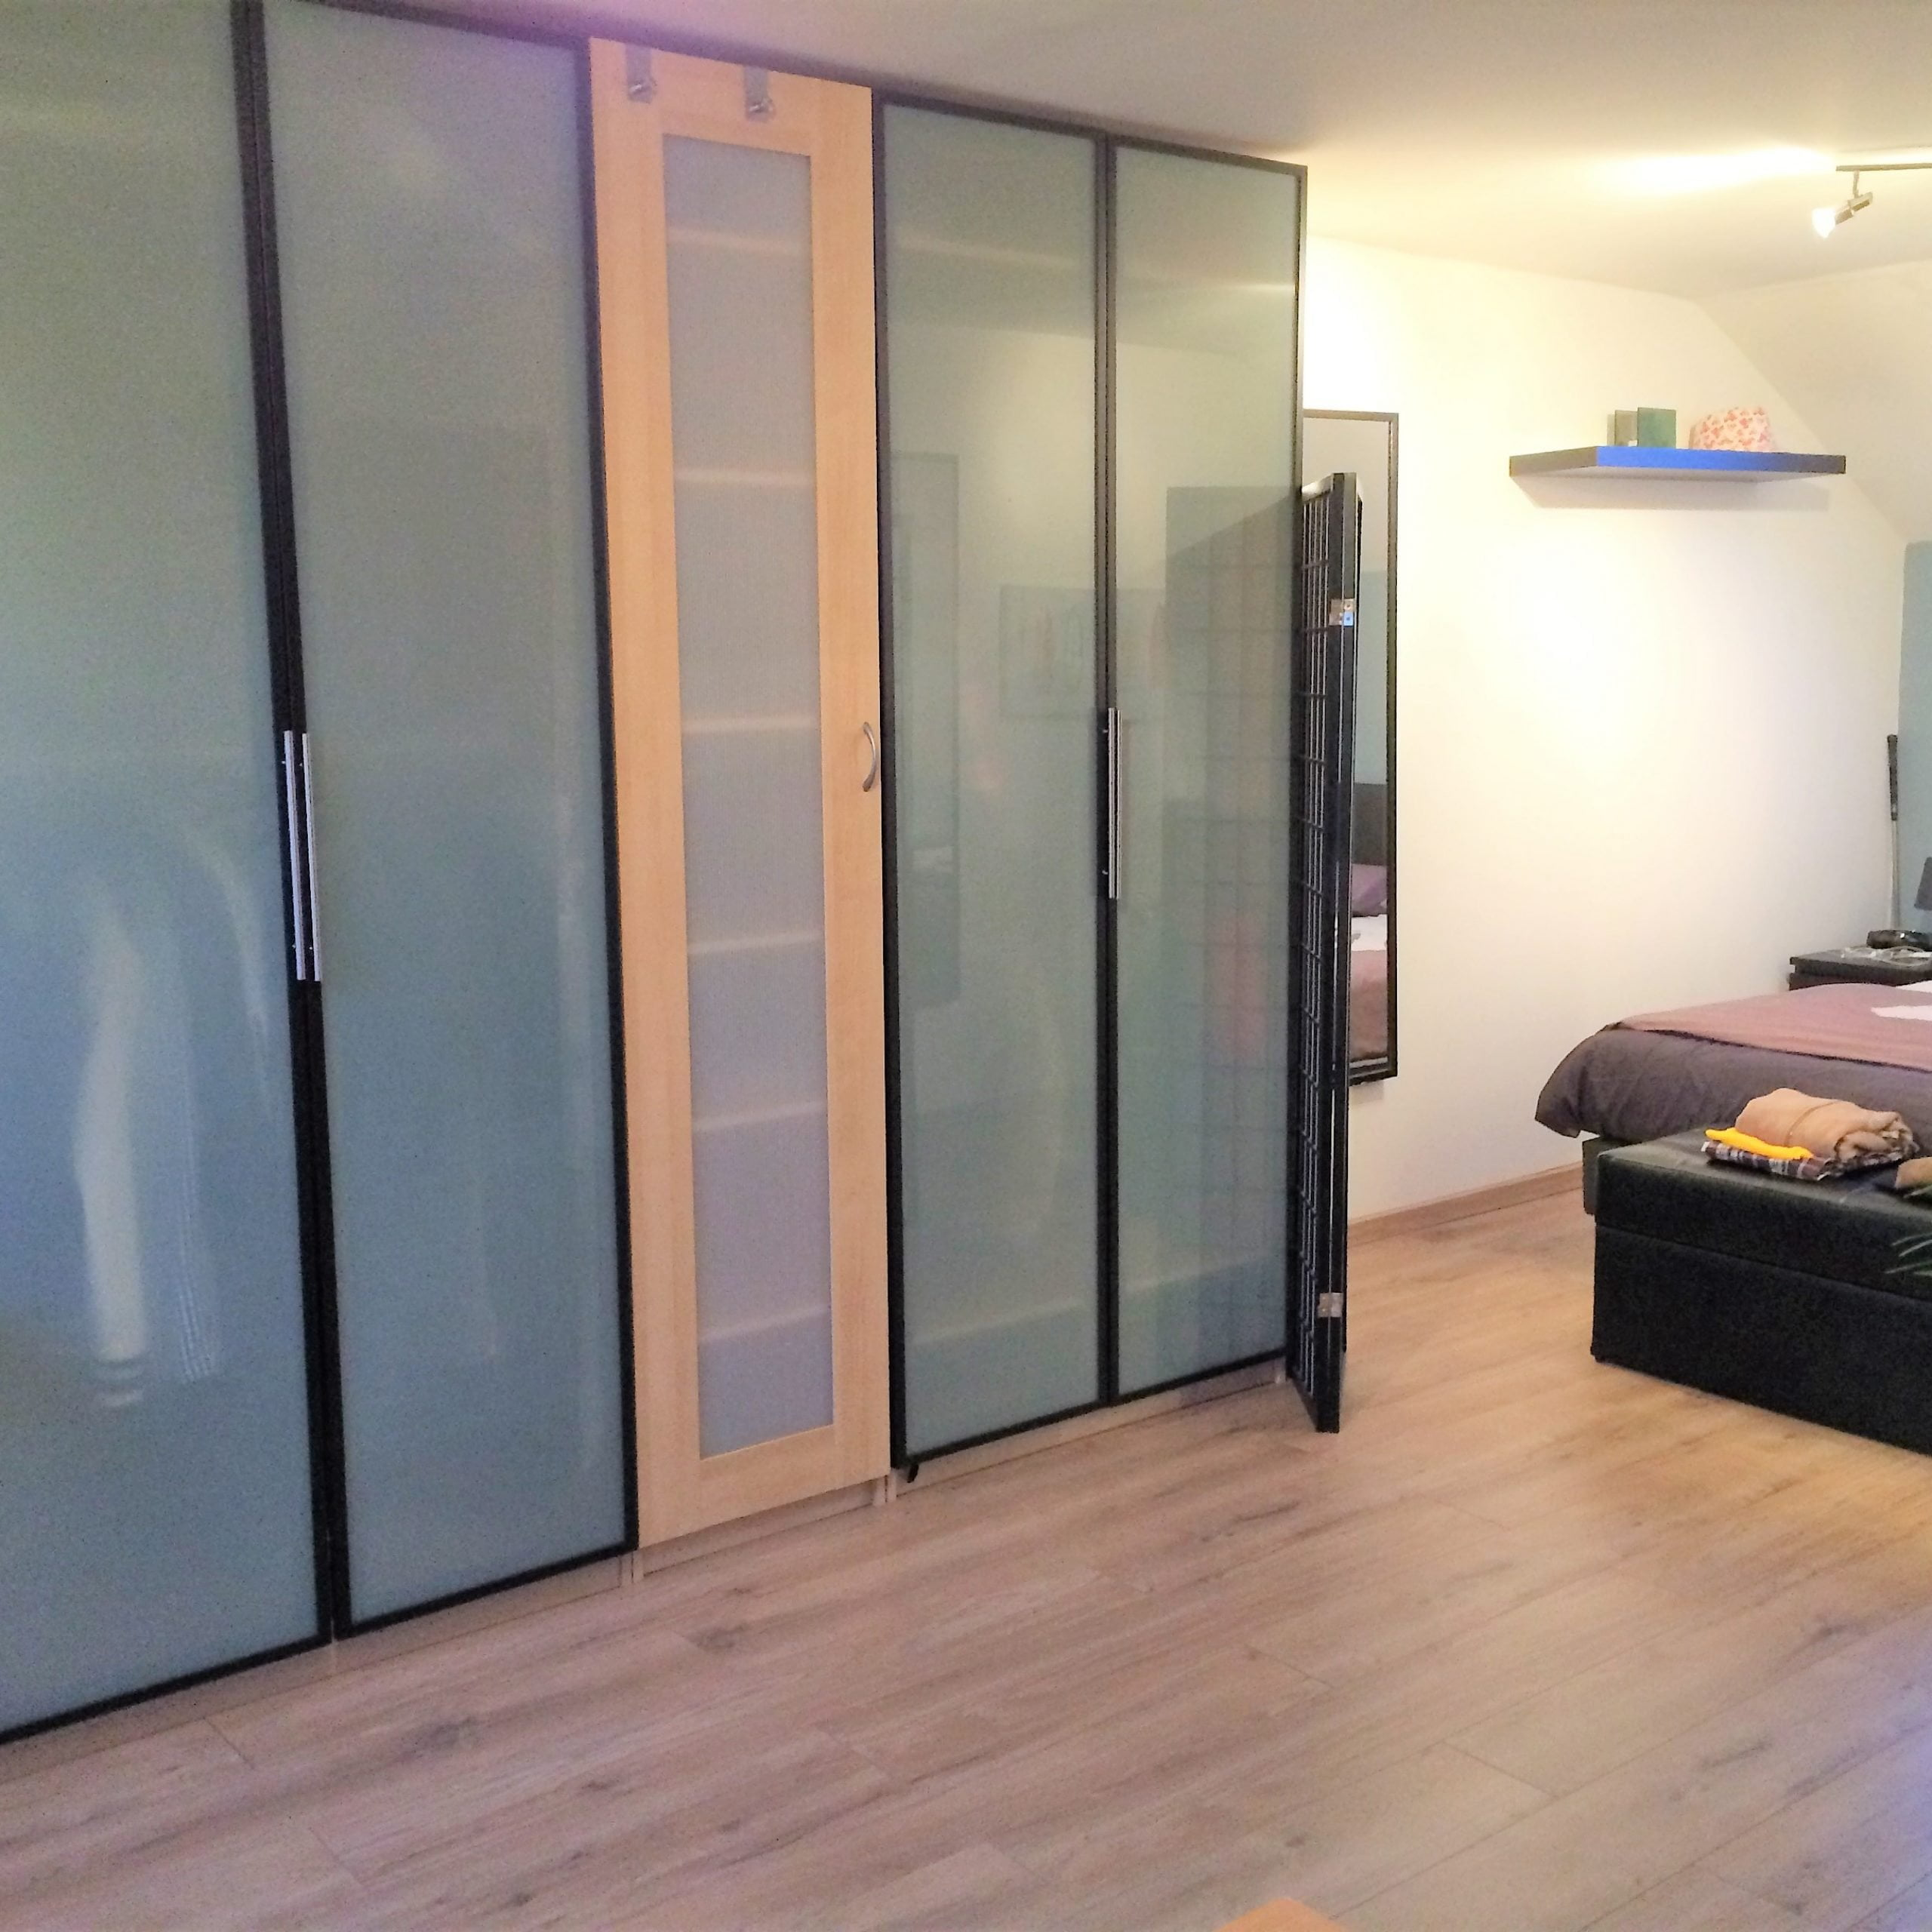 South Duplex - Prime expat rental apartment Antwerp (6)